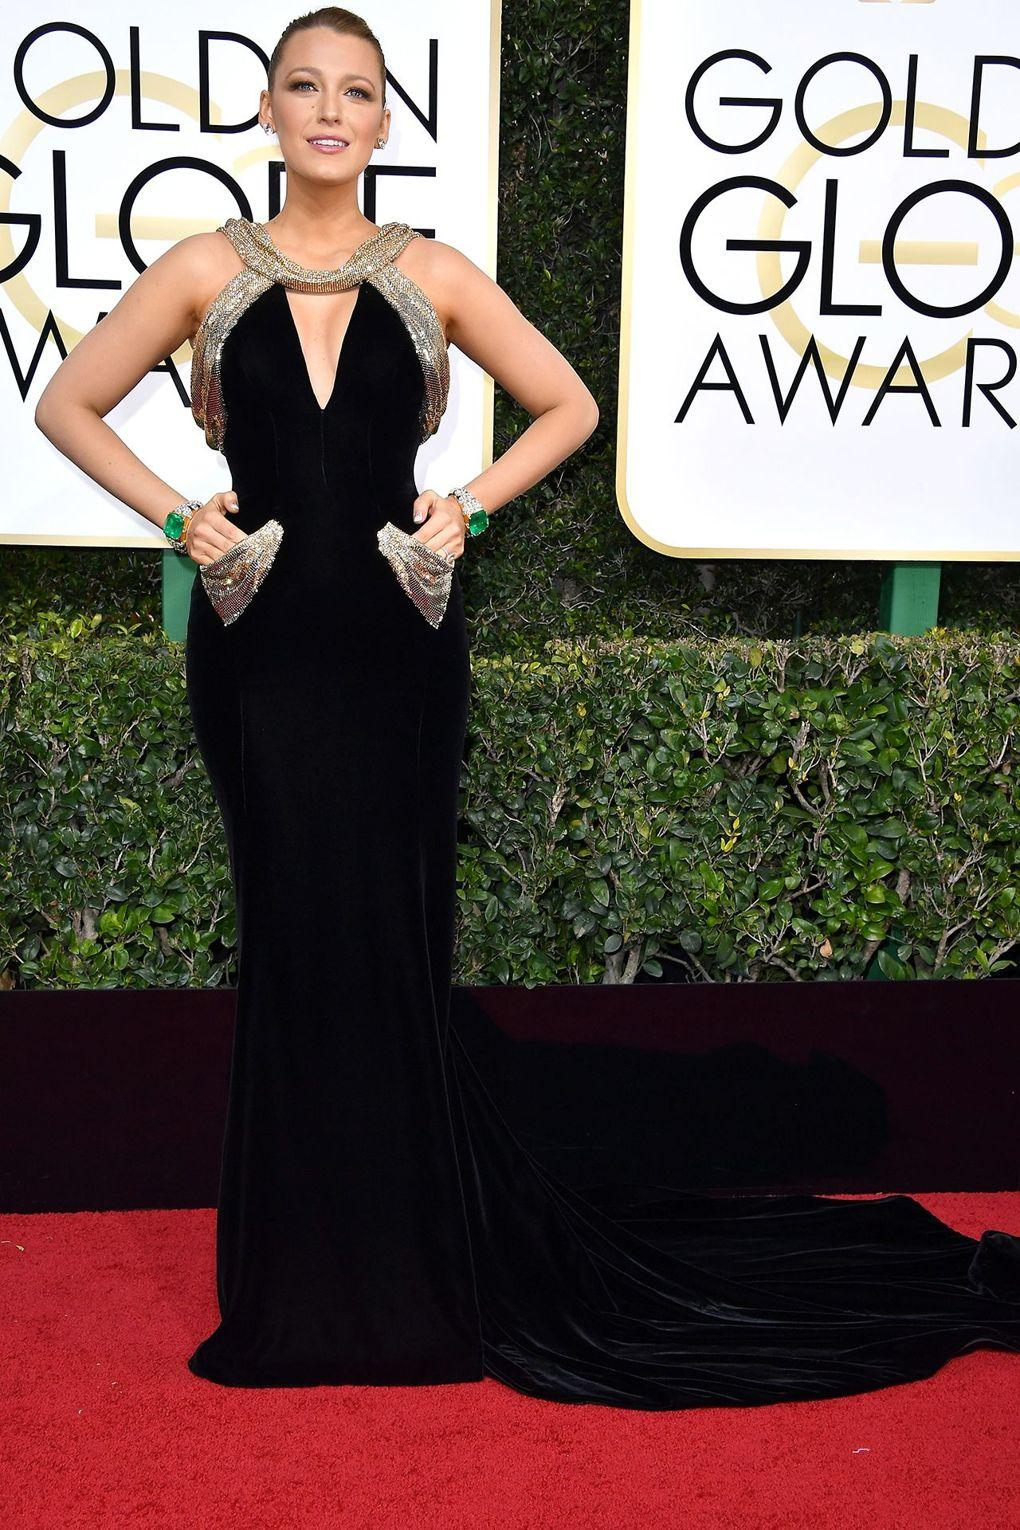 The Best Dressed from Golden Globe Awards - Blake Lively